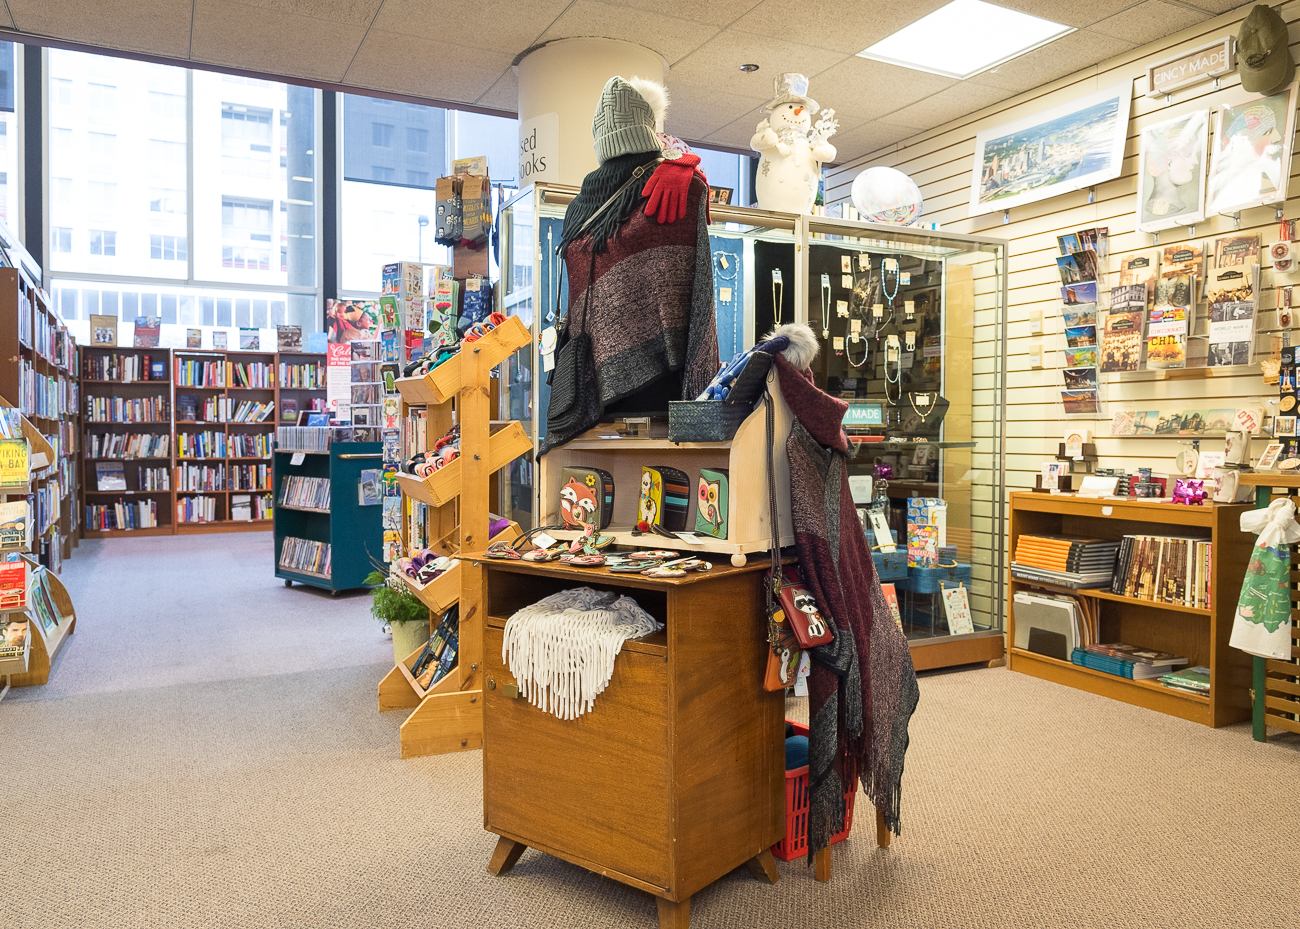 The Library Friends' Shop, located in the middle of the Main Library downtown, sells used books and media, greeting cards, literary gifts, clothing, and a variety of other curio. Proceeds from sales go back to help the Public Library continue to provide programming to people of all ages. The Friends of the Library is an over-60-year-old organization that is dedicated to helping fund programs for the Library. The Shop has been inside the Main Library since November of 1983 and in its current spot on the mezzanine for roughly 15 years. / Image: Phil Armstrong, Cincinnati Refined // Published: 12.13.18